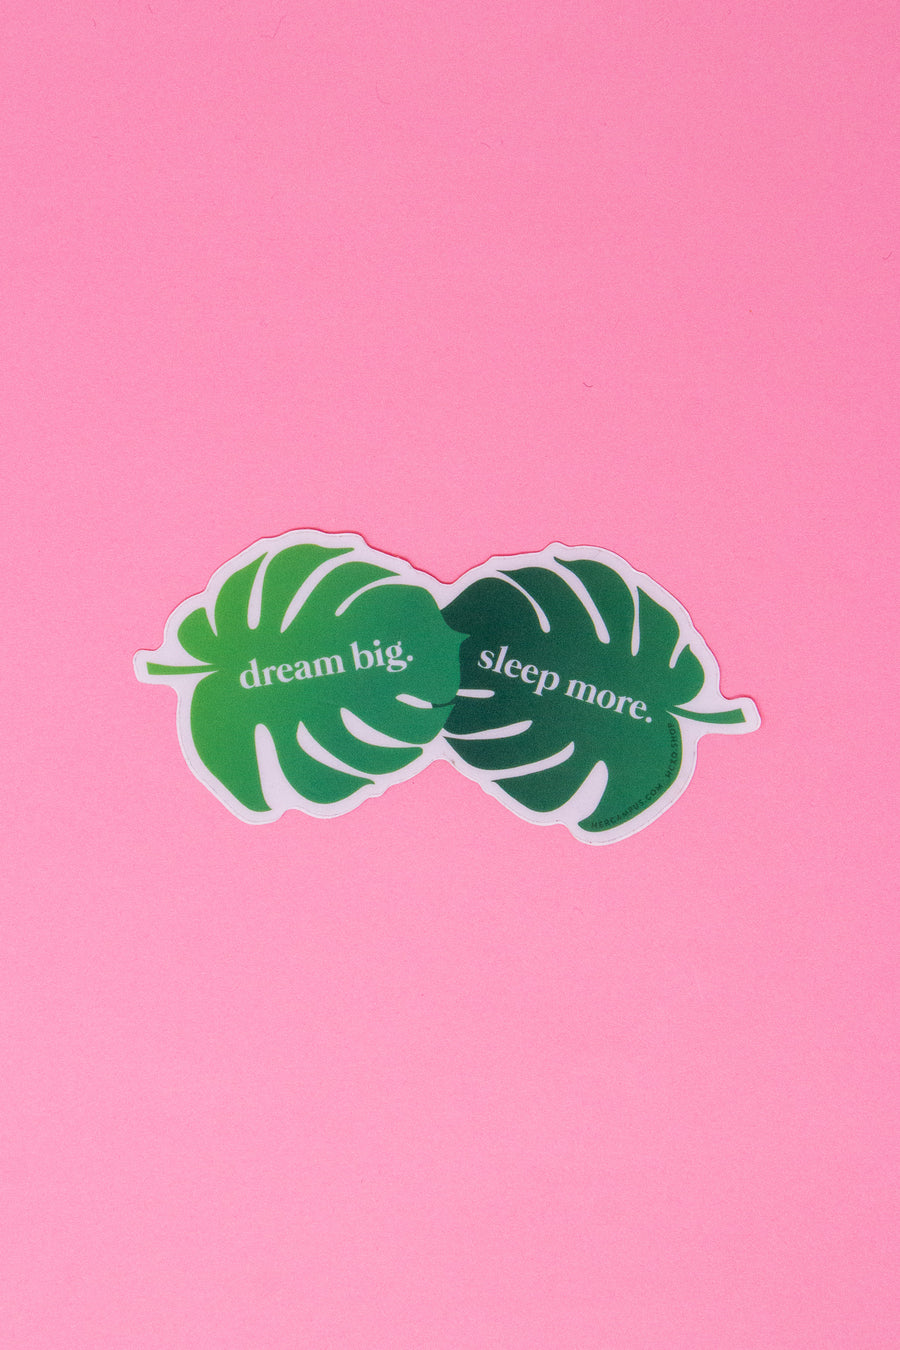 Dream Big, Sleep More Sticker